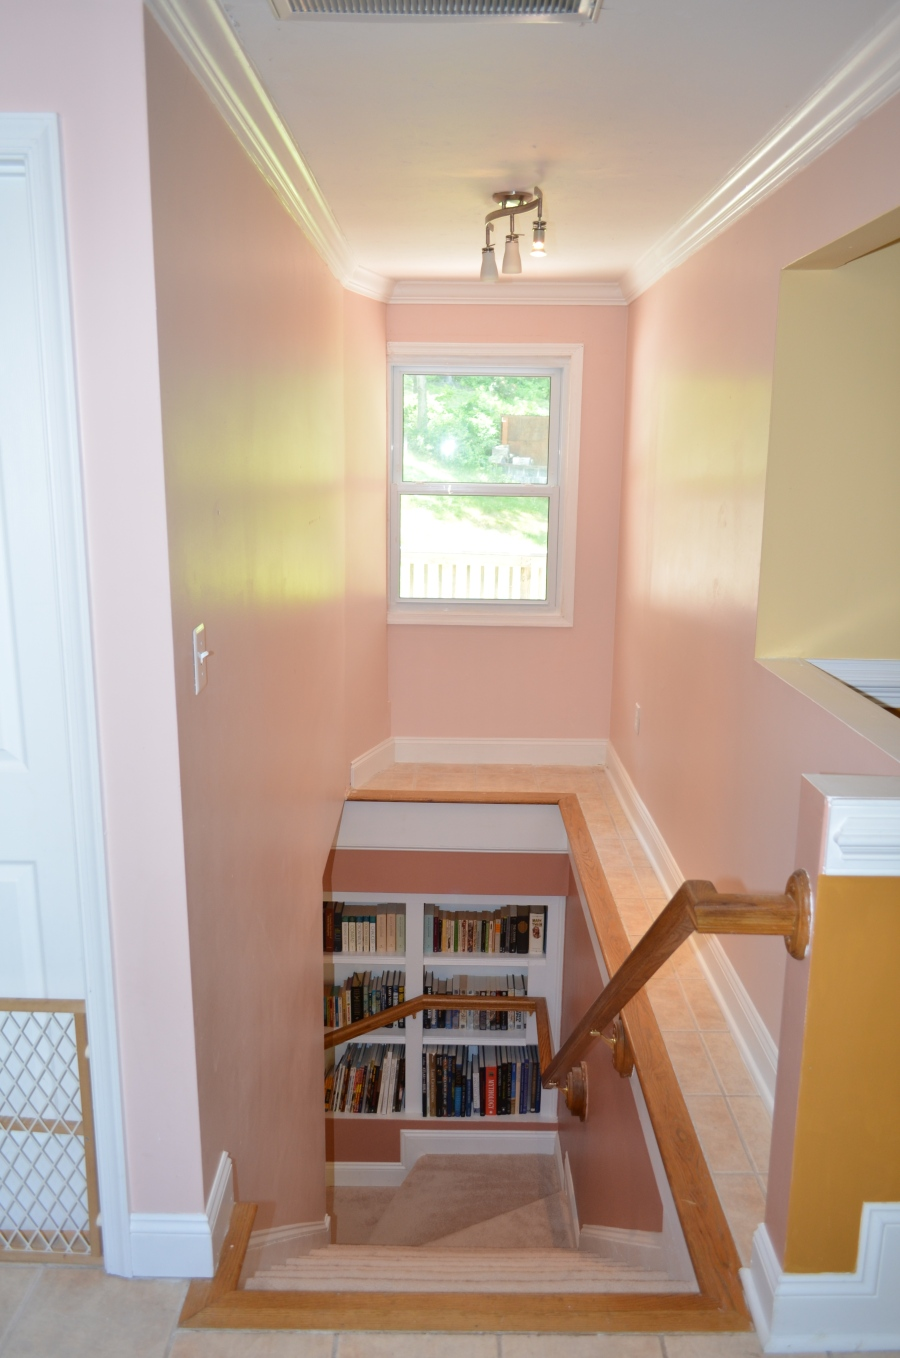 Built-in bookshelves in the basement stairway. The stairway leads from the main level sitting area to the basement foyer and walk-out double door exit.